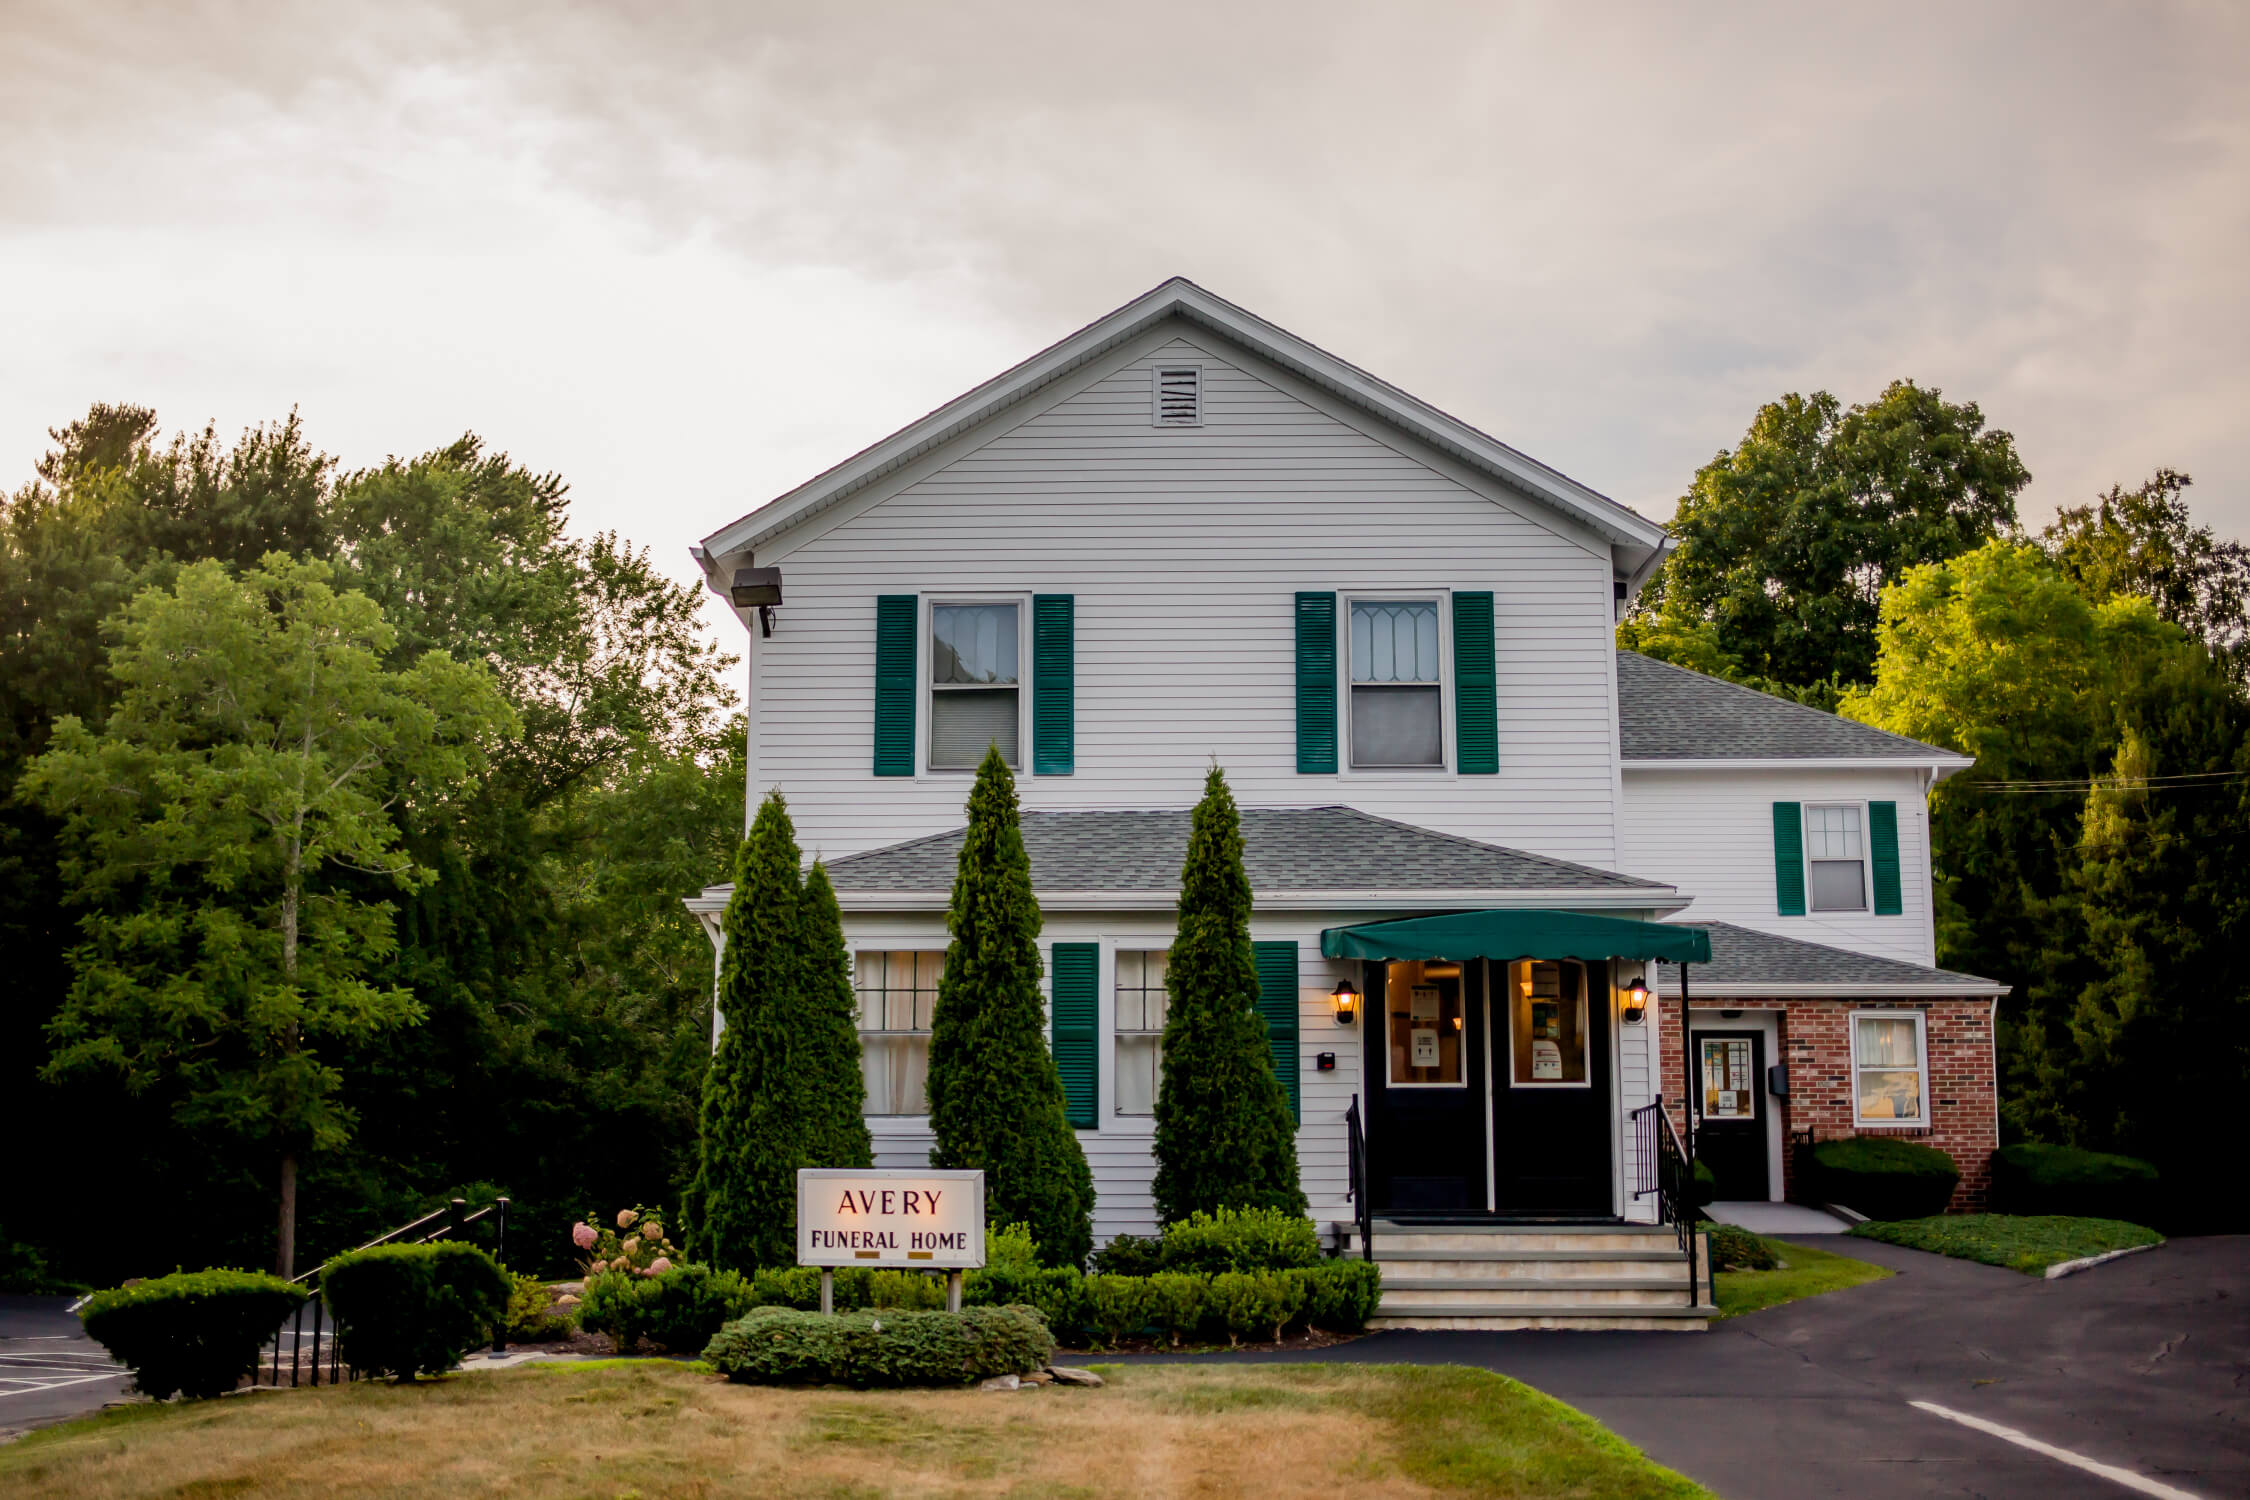 tour our funeral home in Hope Valley, RI